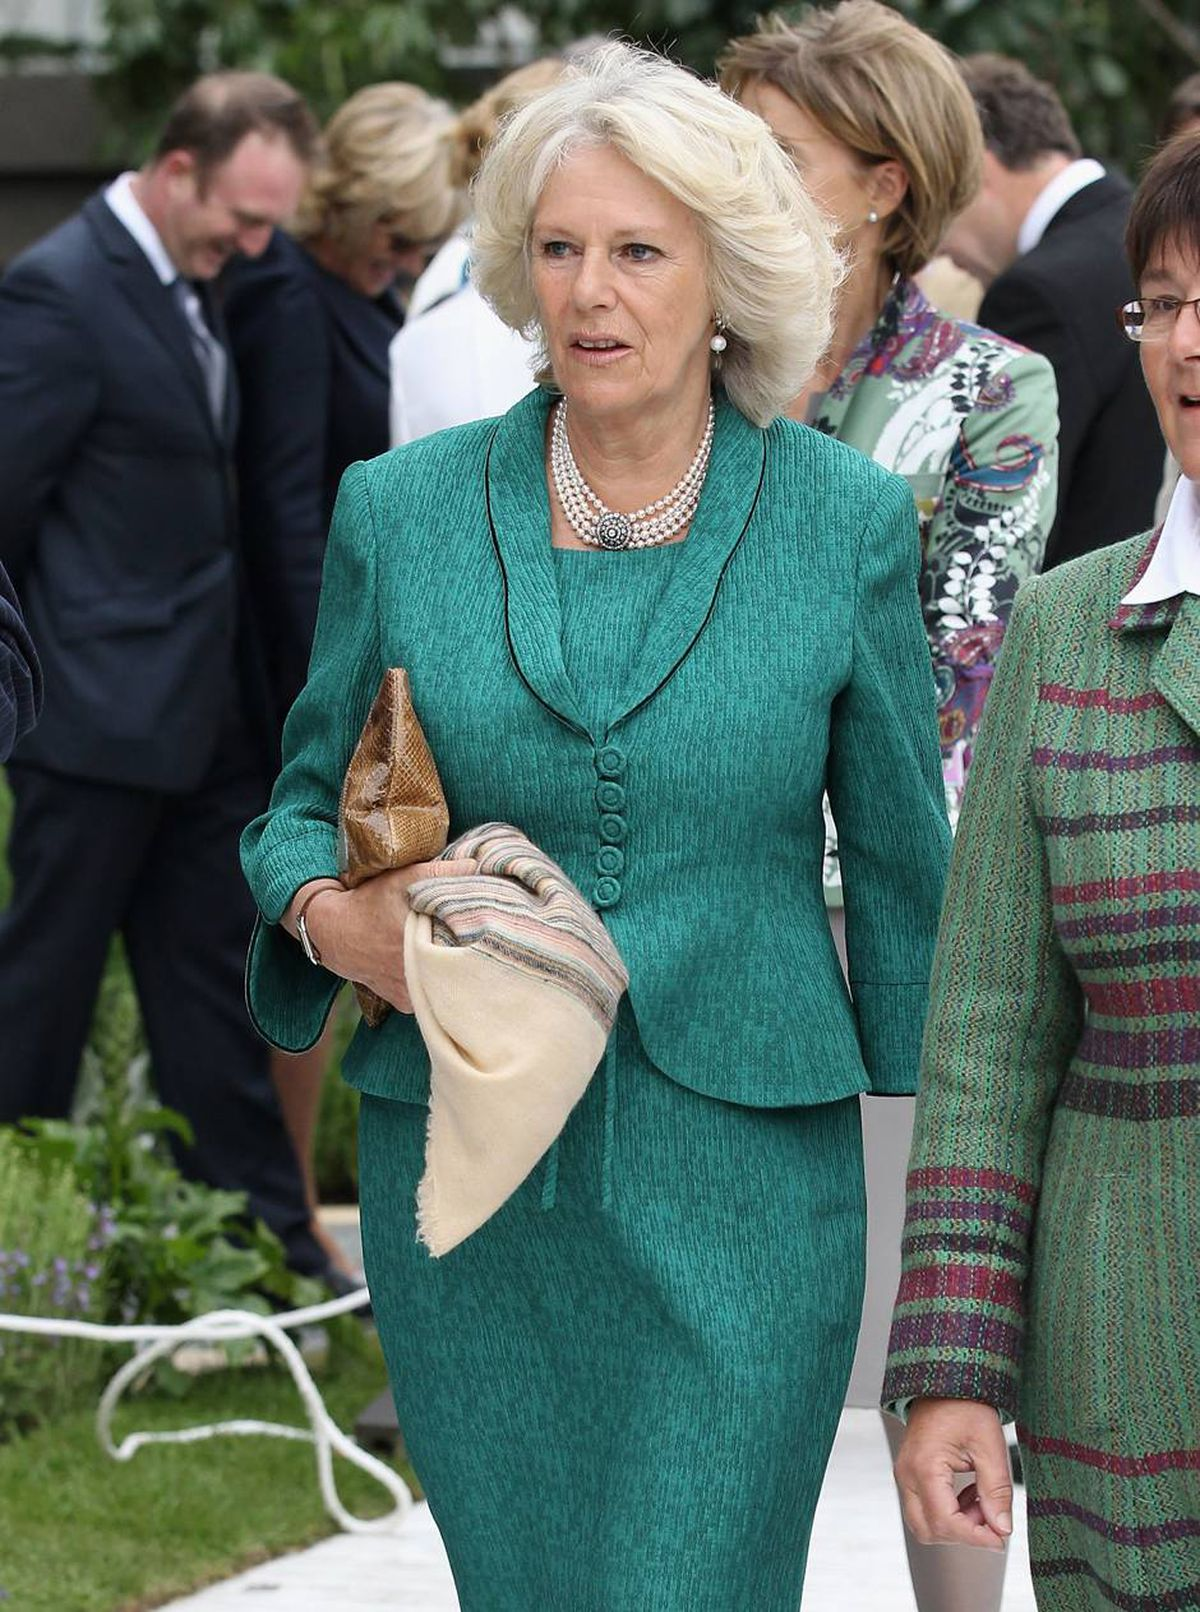 Camilla, Duchess of Cornwall visits the Chelsea Flower Show Press and VIP Day on May 23, 2011 in London, England.